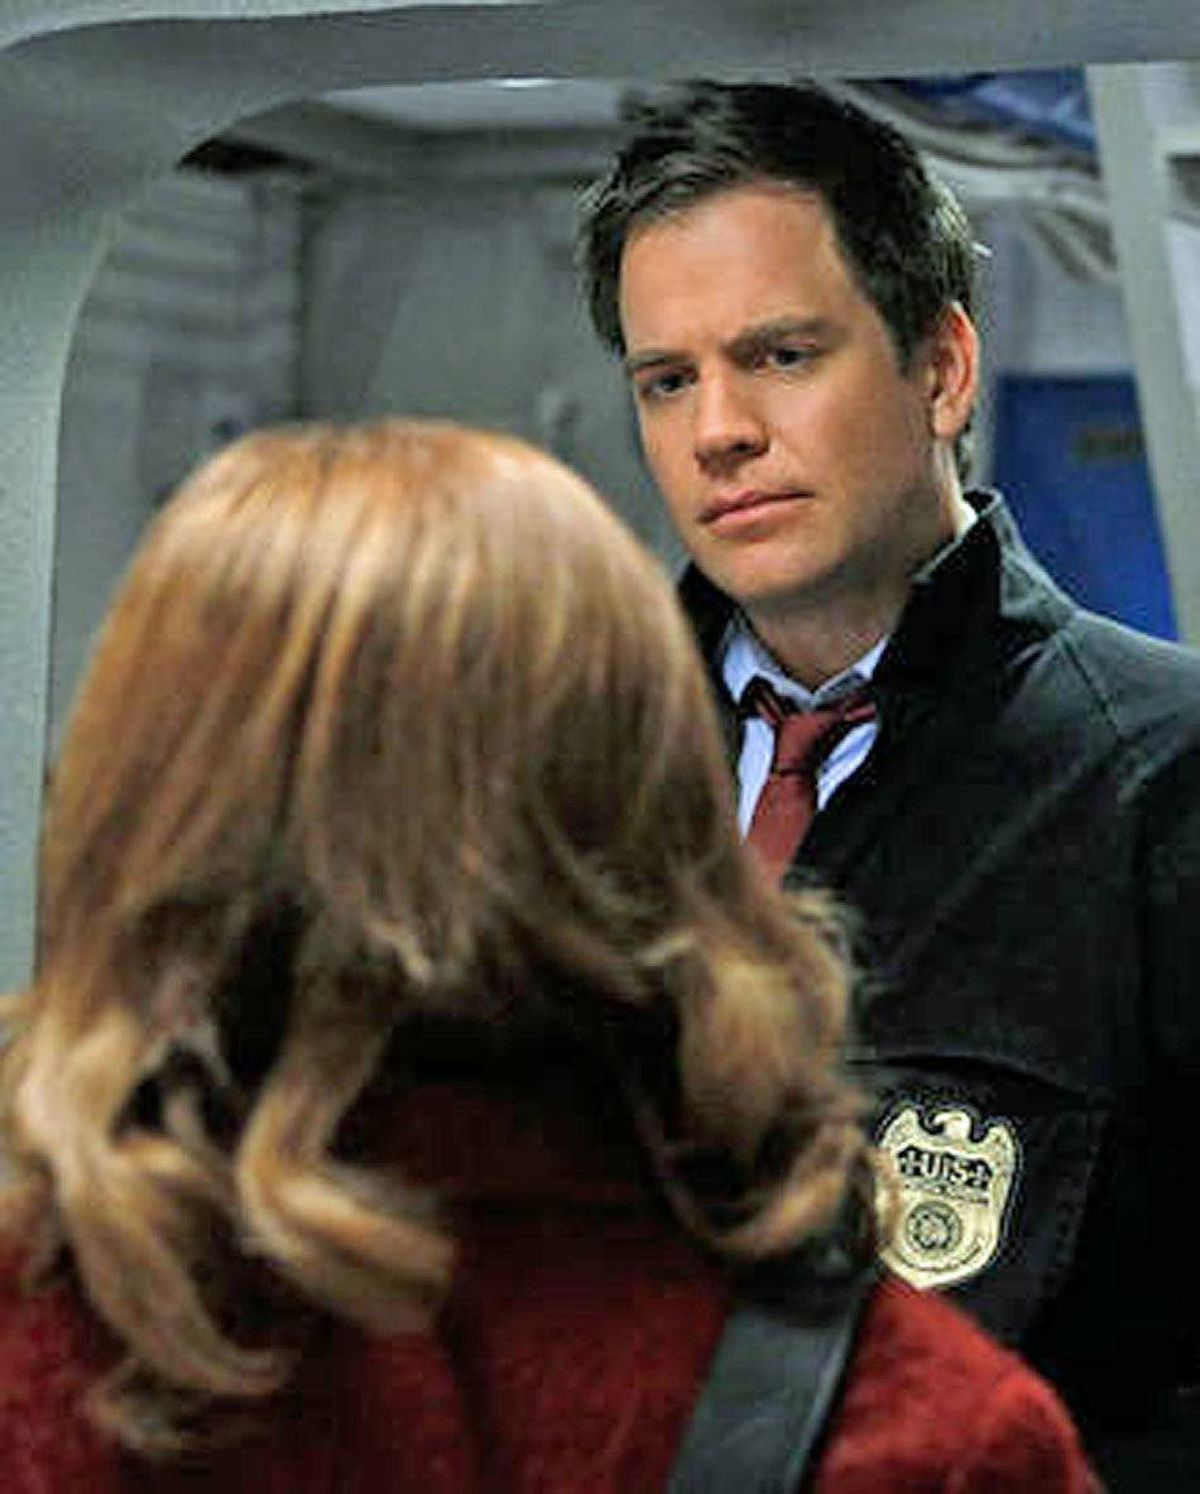 DRAMA NCIS CBS, 8 p.m. Network television's highest-rated crime-procedural series takes a slight format twist in this rebroadcast from last season. In lieu of the usual cloak-and-dagger plotline, the episode begins with the murder of a top-ranked naval commander aboard his own ship. Enter the psychological evaluator Dr. Rachel Cranston (Wendy Makkena), who methodically interviews each member of the NCIS team, one by one, to discover what really happened. Veteran character player Michael Nouri returns to his recurring role of former Mossad agent Eli David.